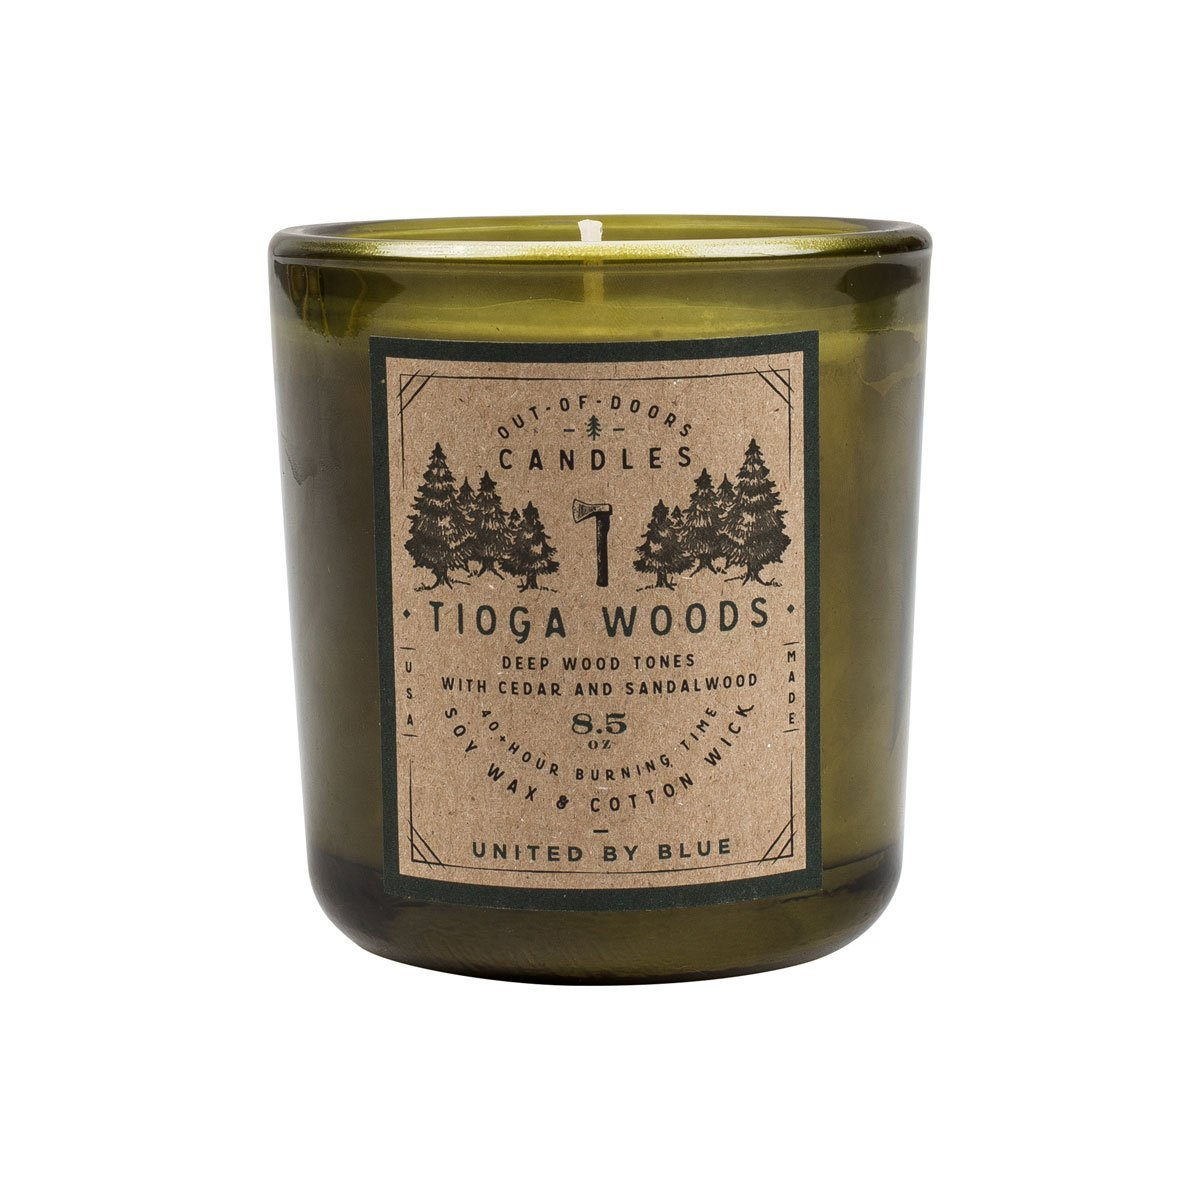 United By Blue | Out-of-Doors Candle | Tioga Woods | Soy Wax Candle